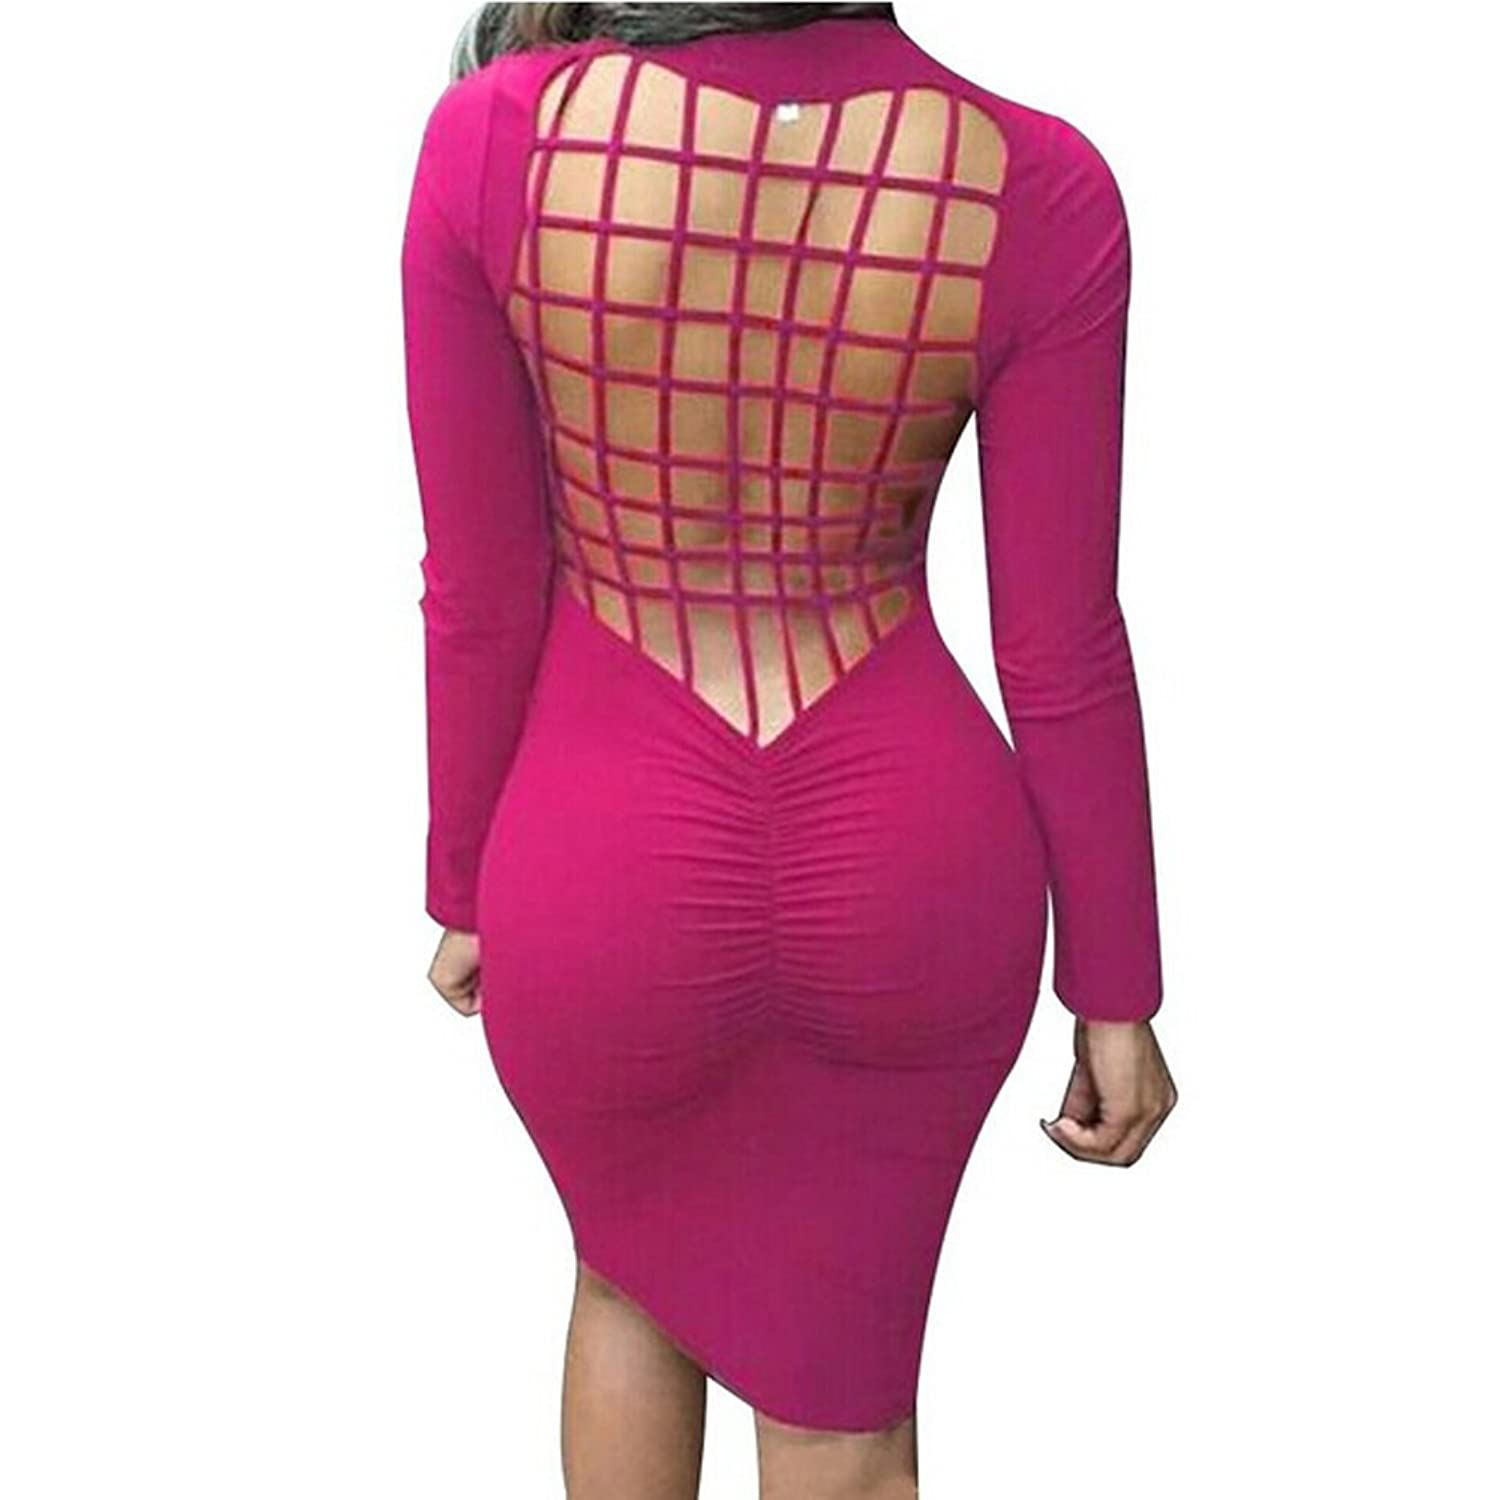 Laiyuan Womens Sexy Back Mesh Cross Stretch Bodycon Bandage Party Evening Dresses